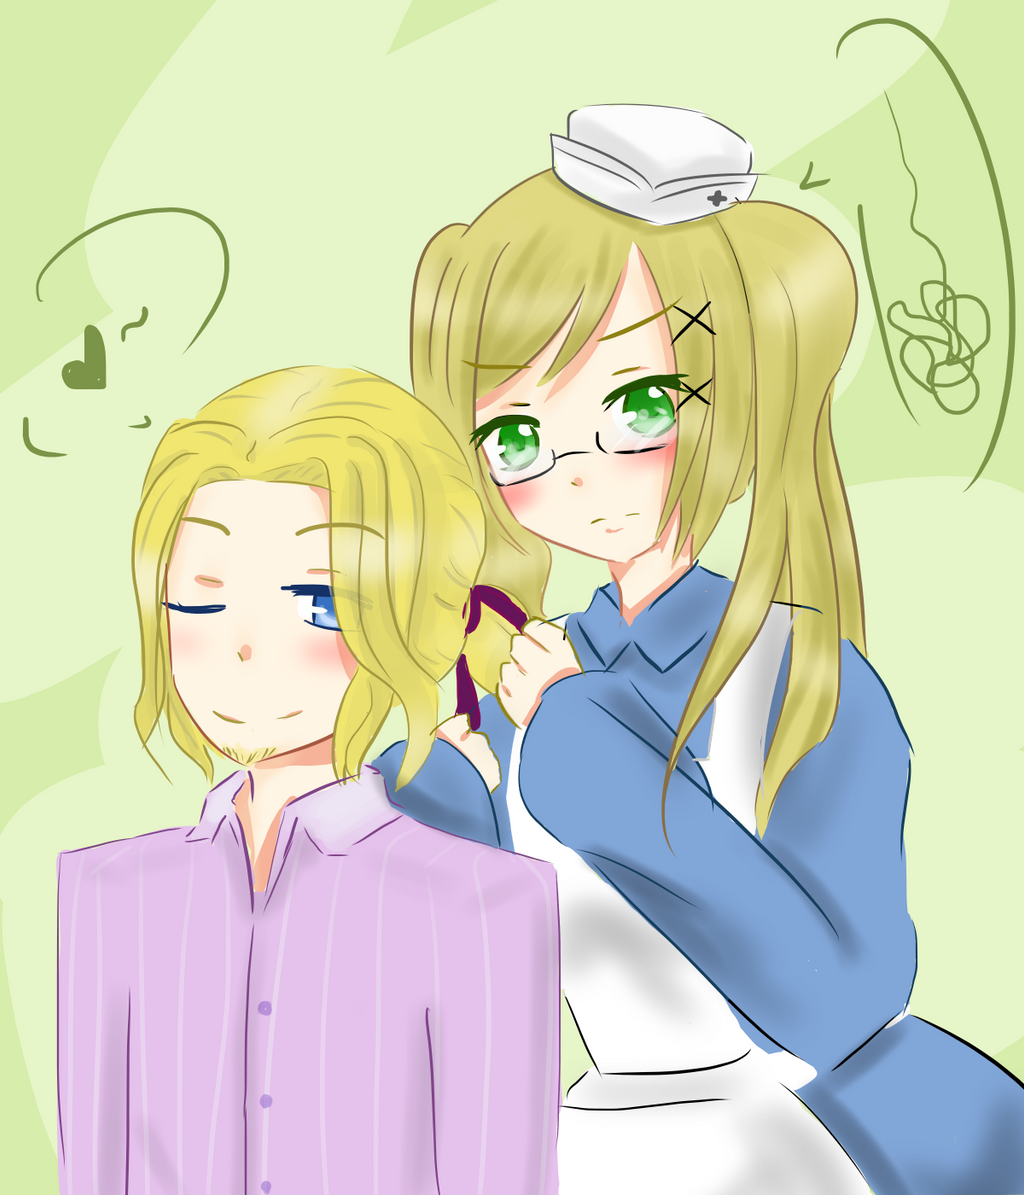 Req france and fem england by 12ismyluckynumber on deviantart